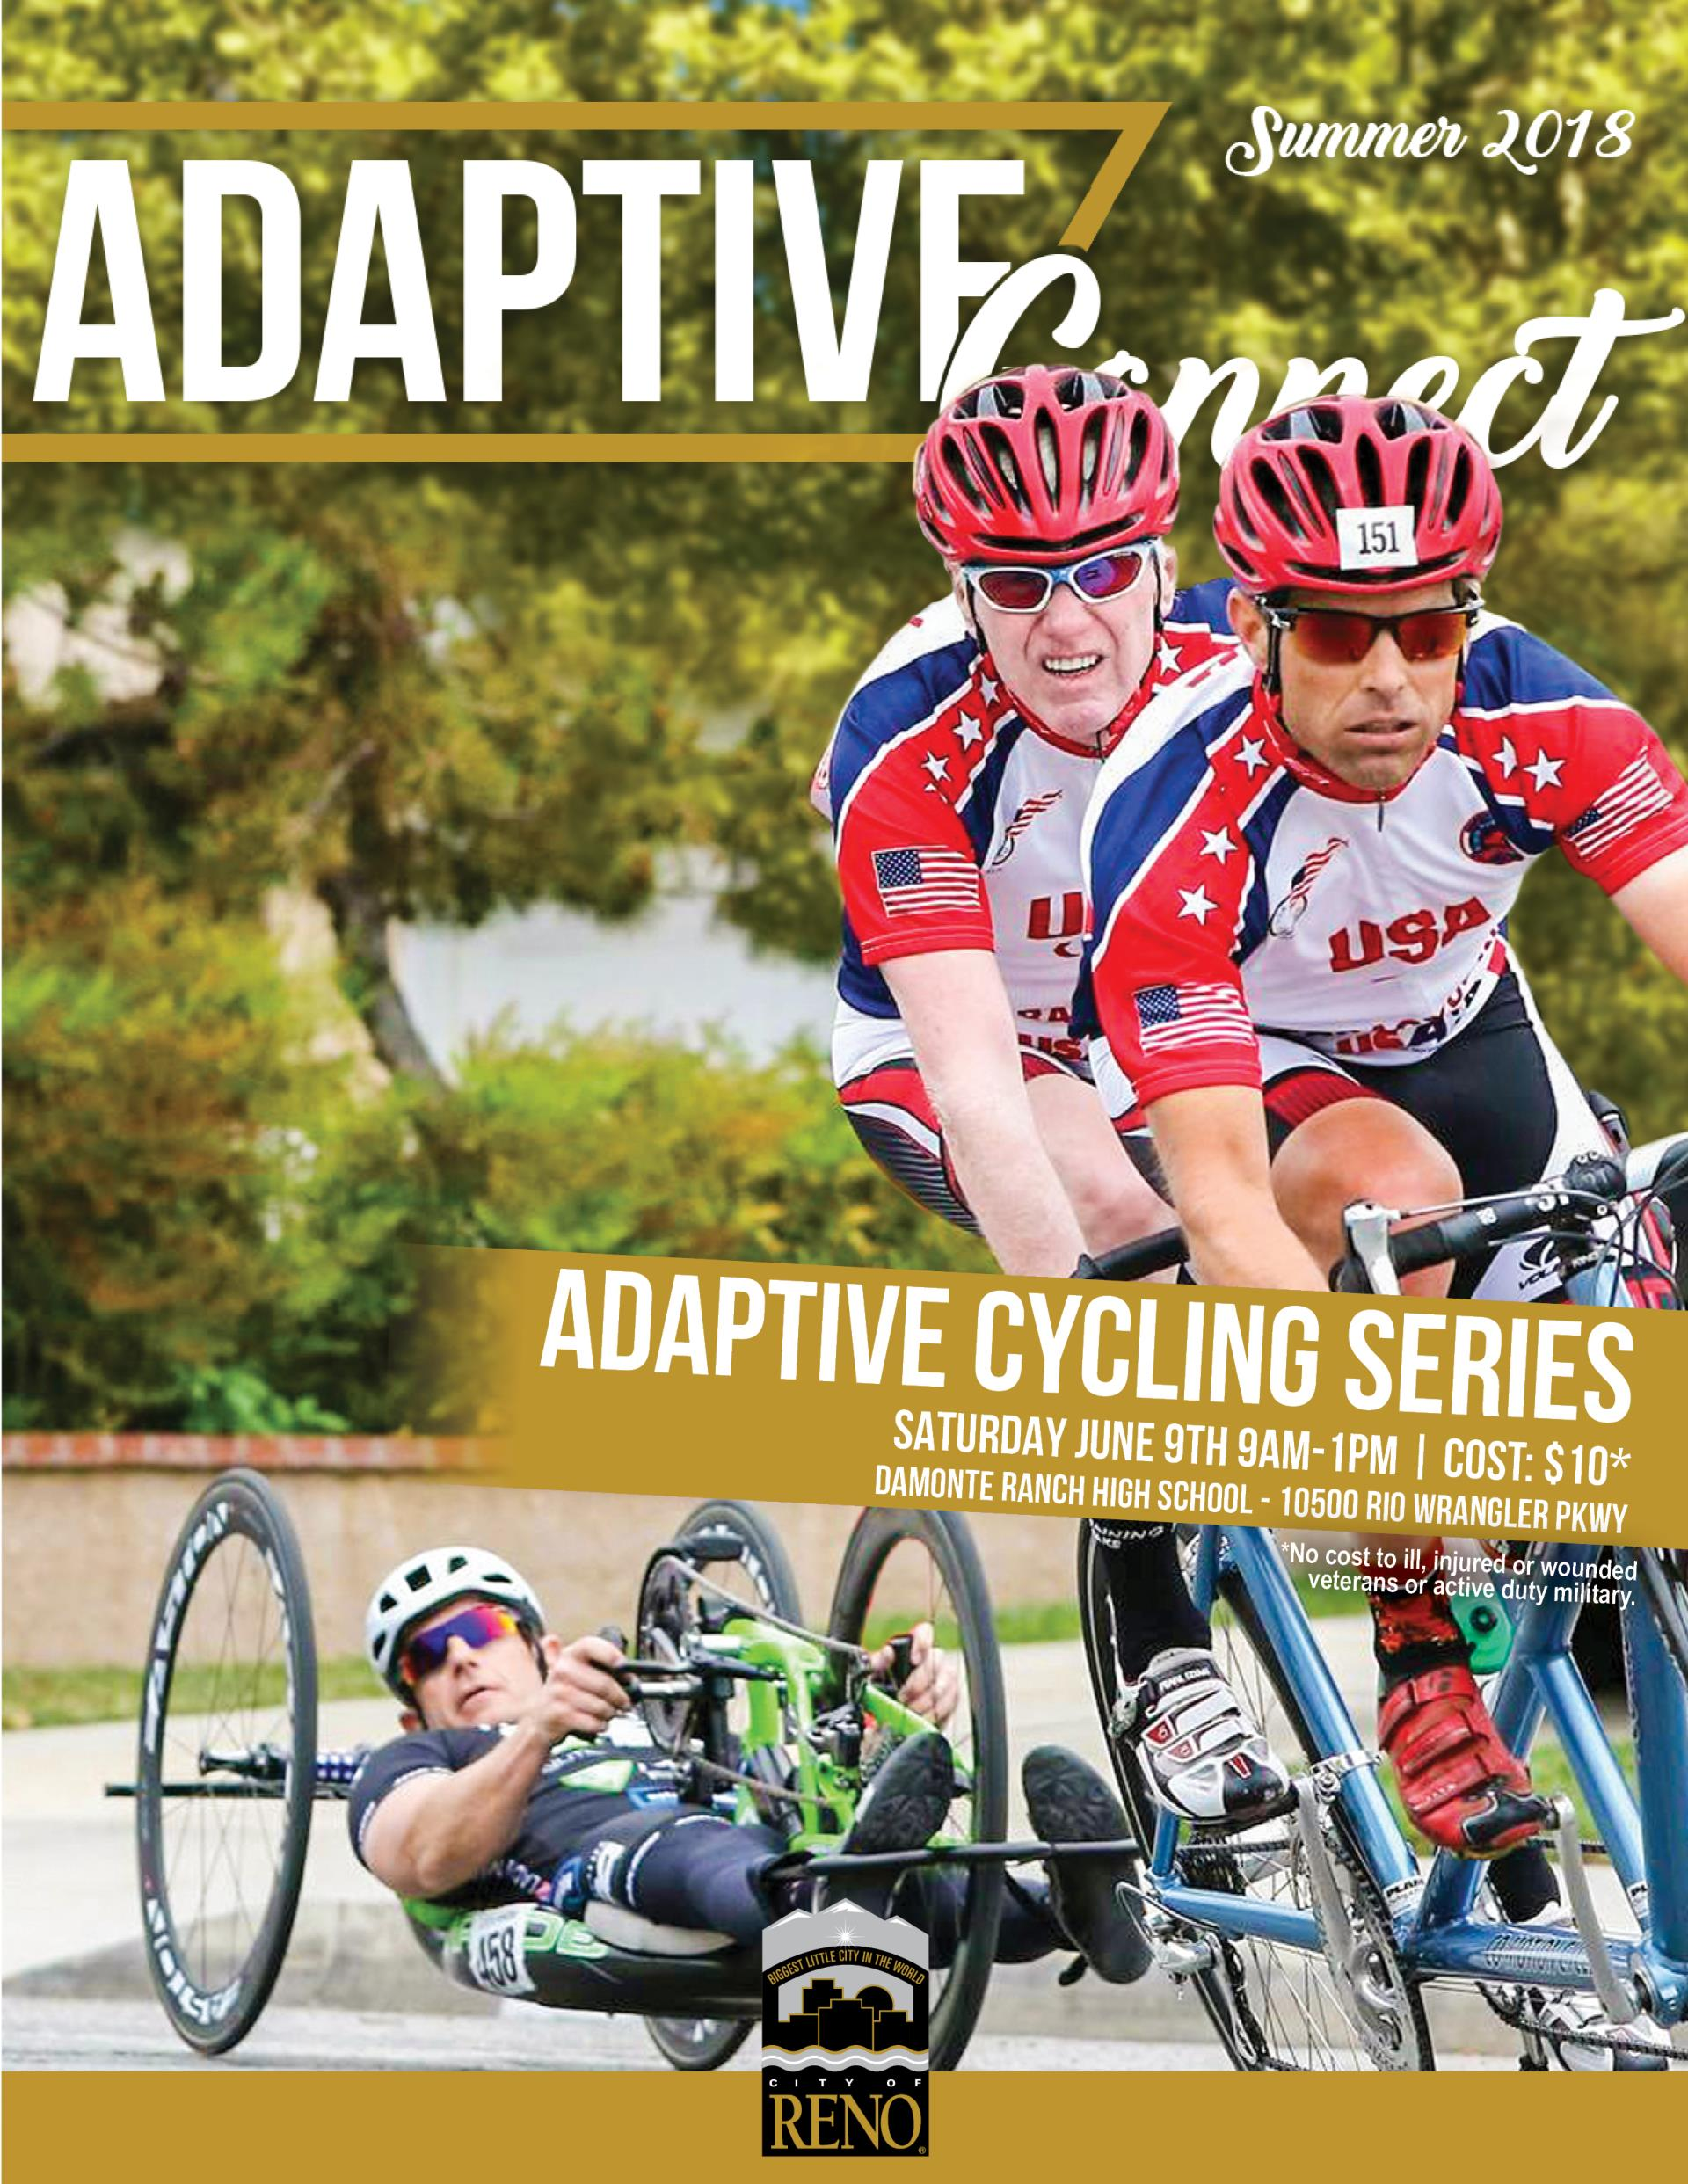 Adaptive Newsletter Cover with Adaptive Cycling Athletes